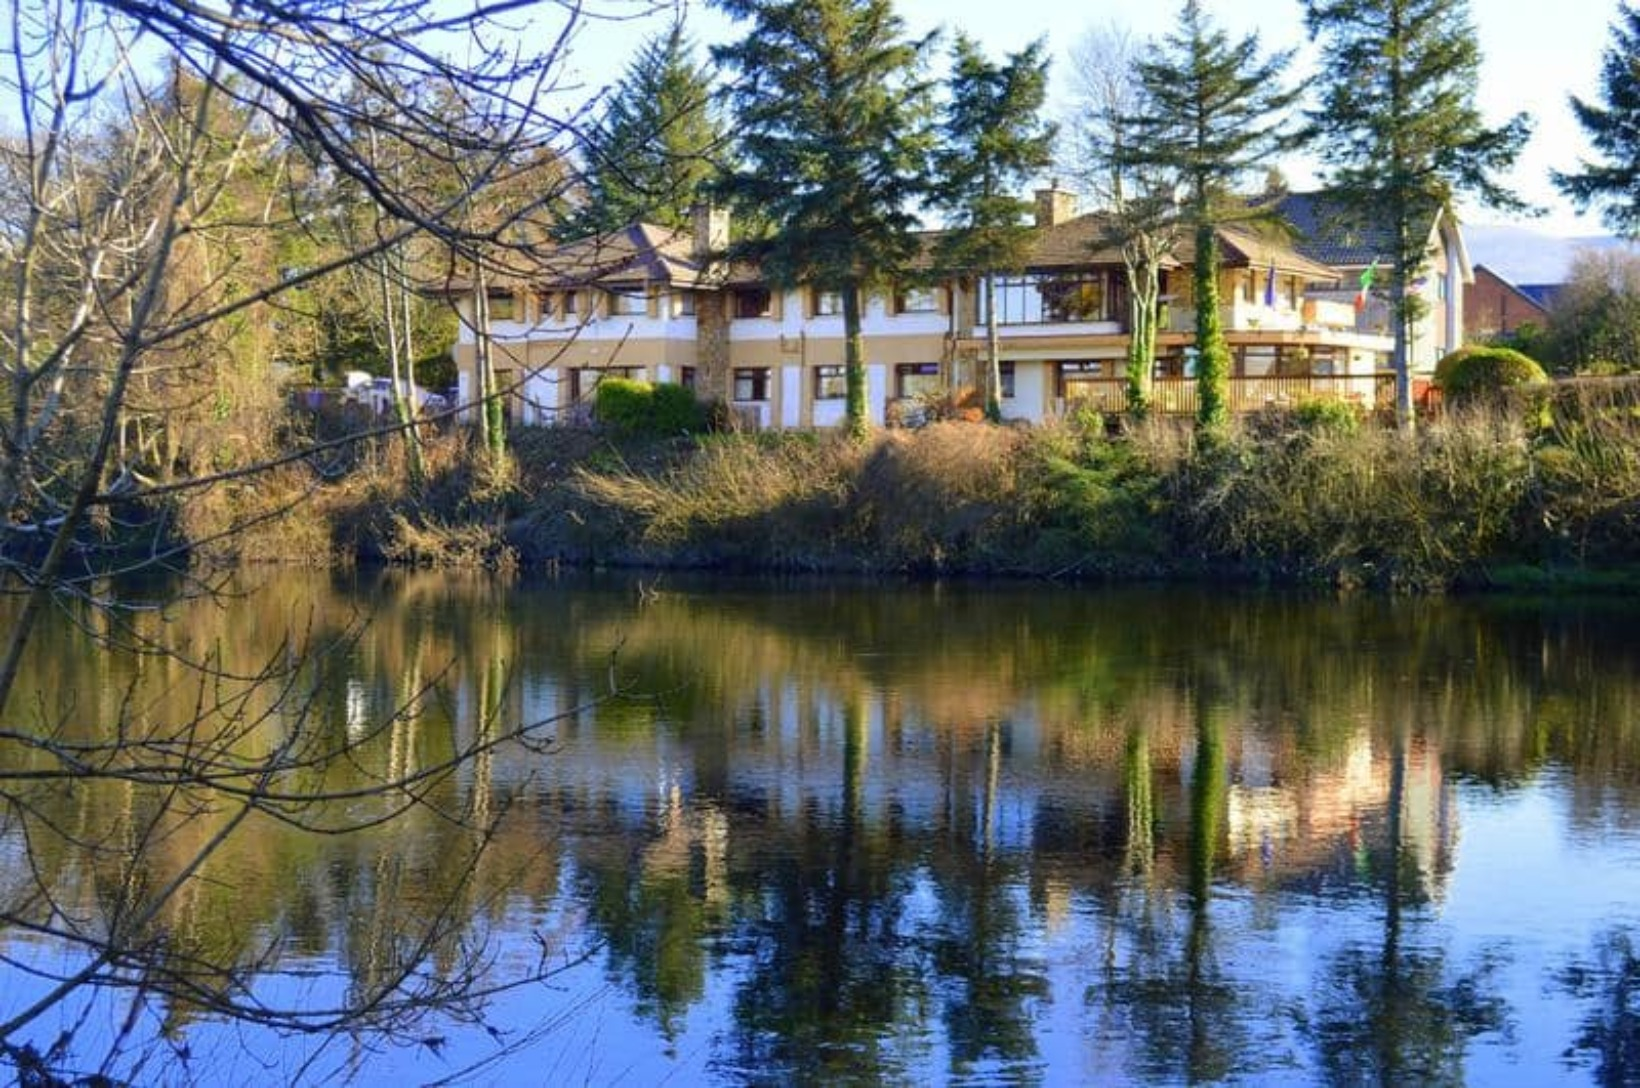 A body of water surrounded by trees at Killarney View House.